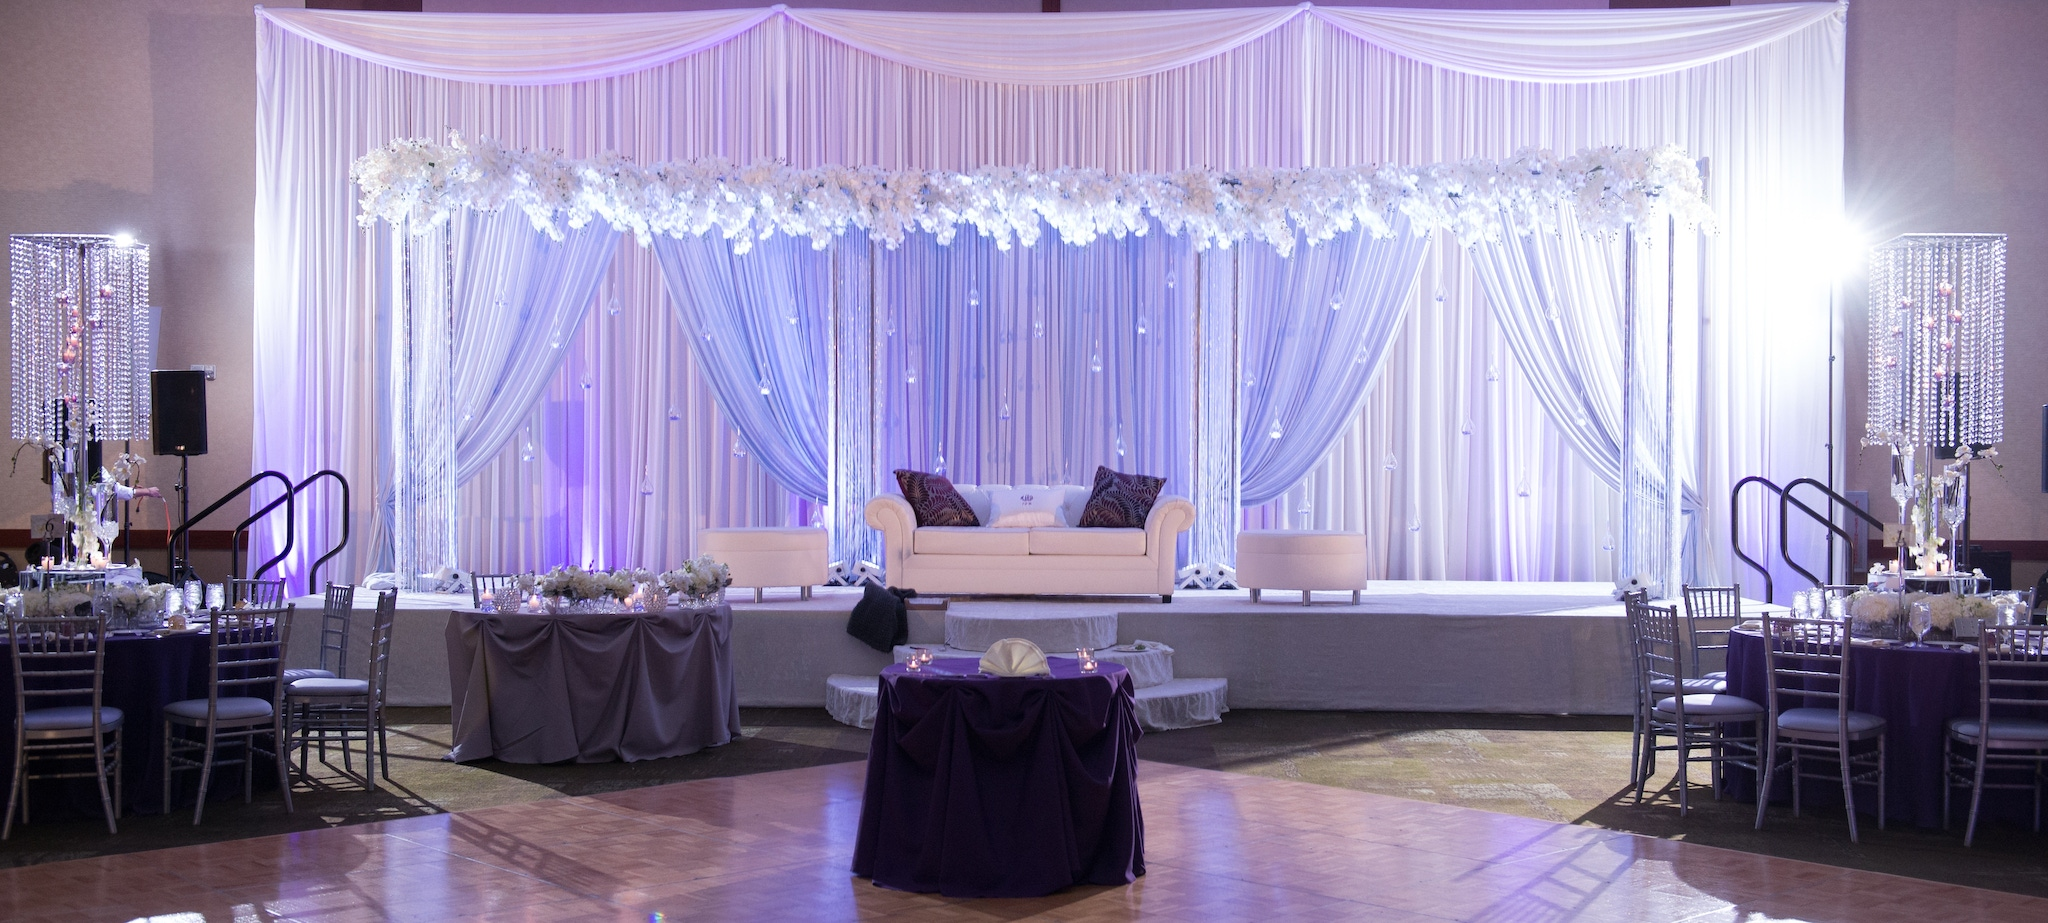 Best wedding decor - ABRICOE DESIGNS